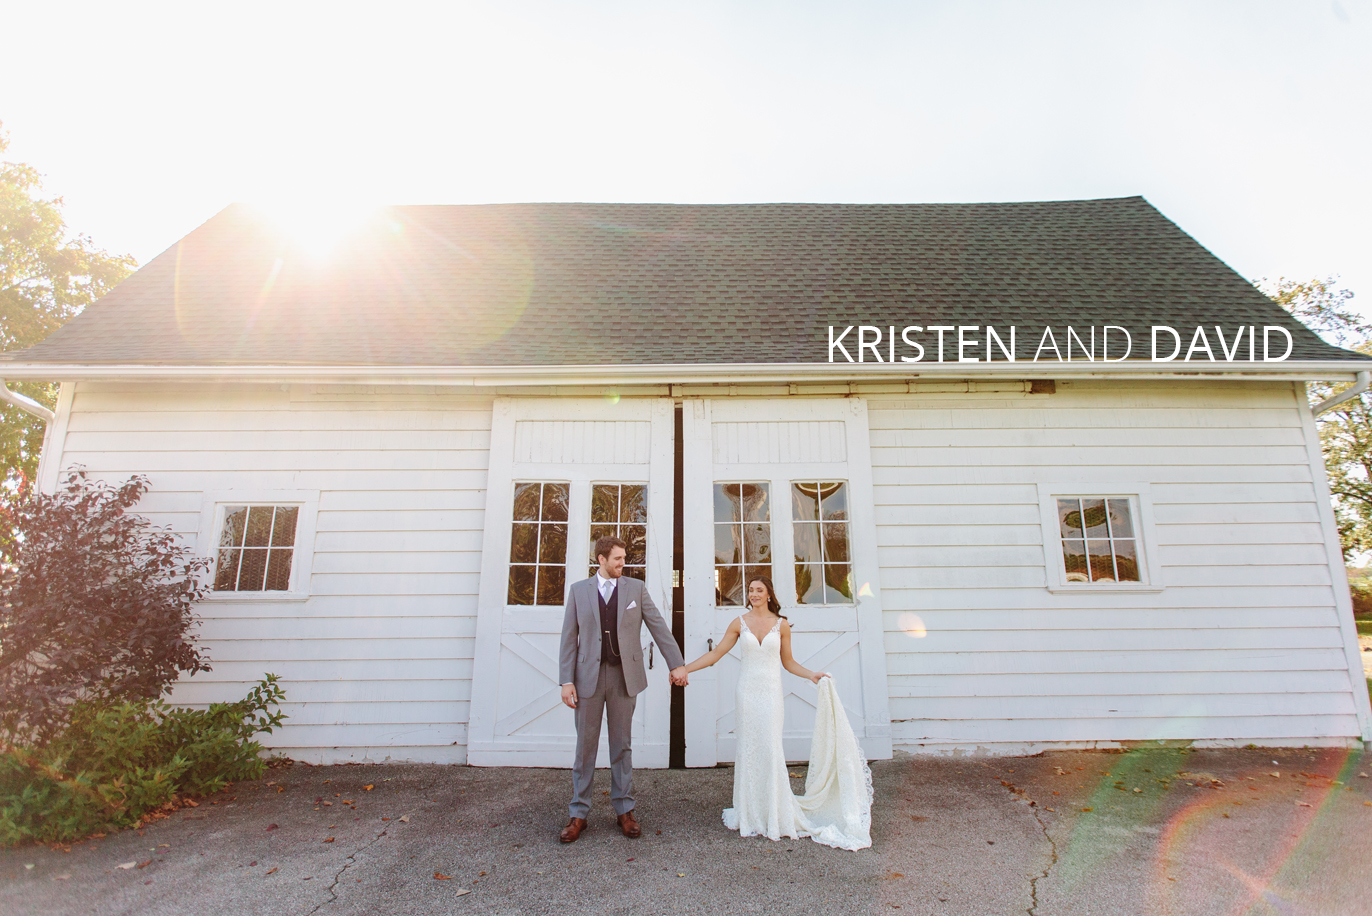 kristen and david getting married at the darby house